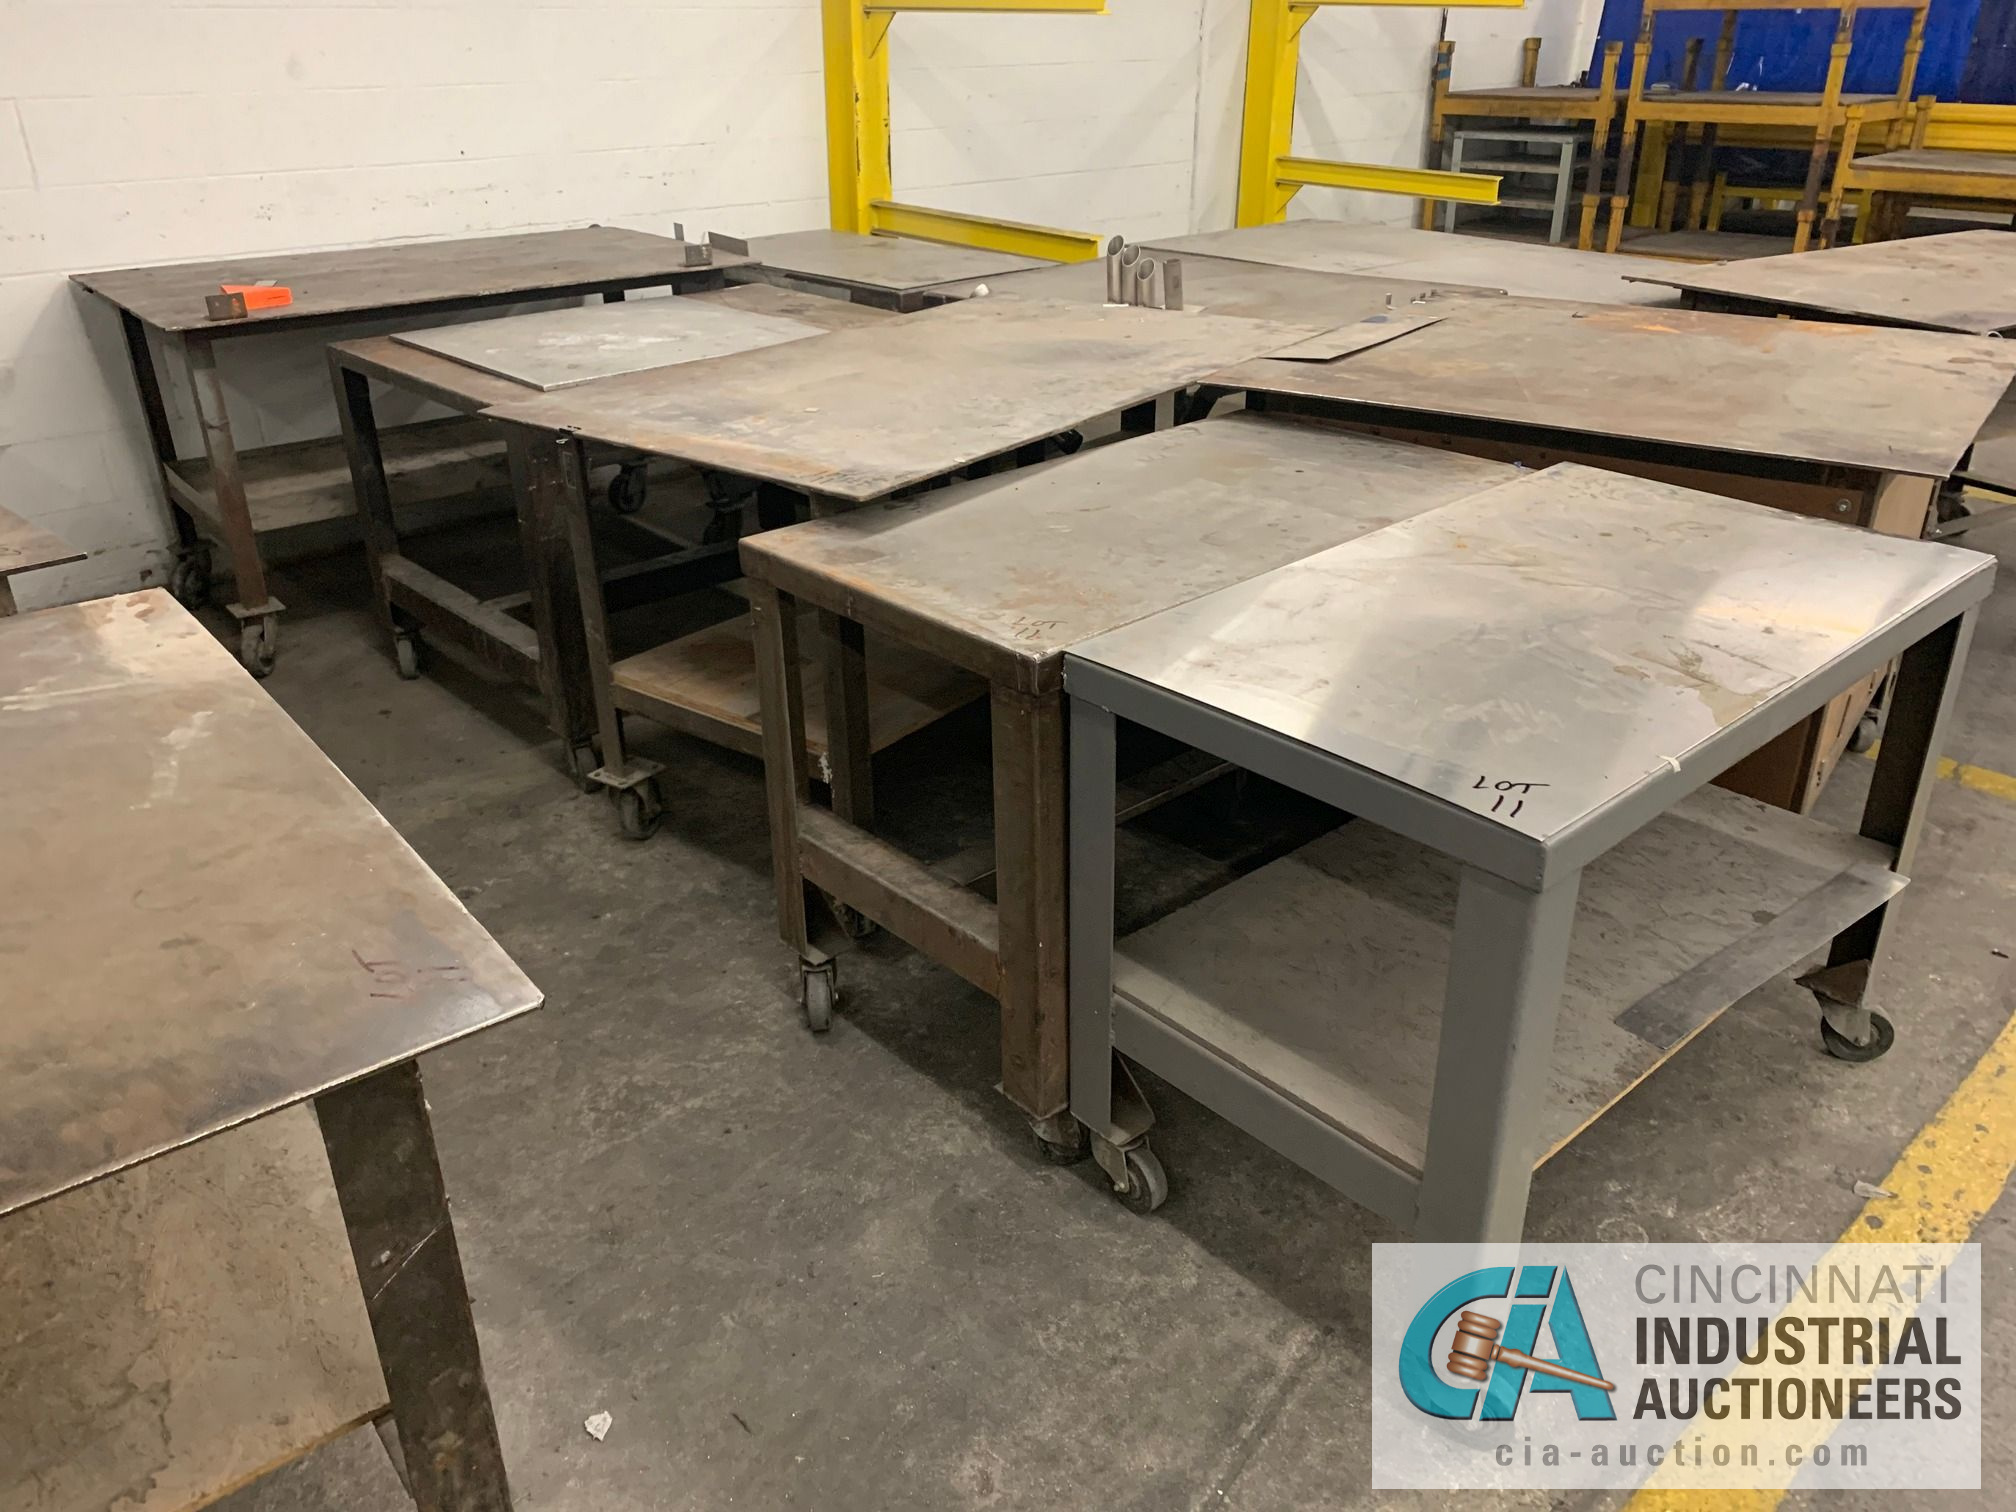 VARIOUS HEAVY DUTY CARTS, SOME SET-UP TO BE HEAVY WELD TABLES - Image 3 of 5